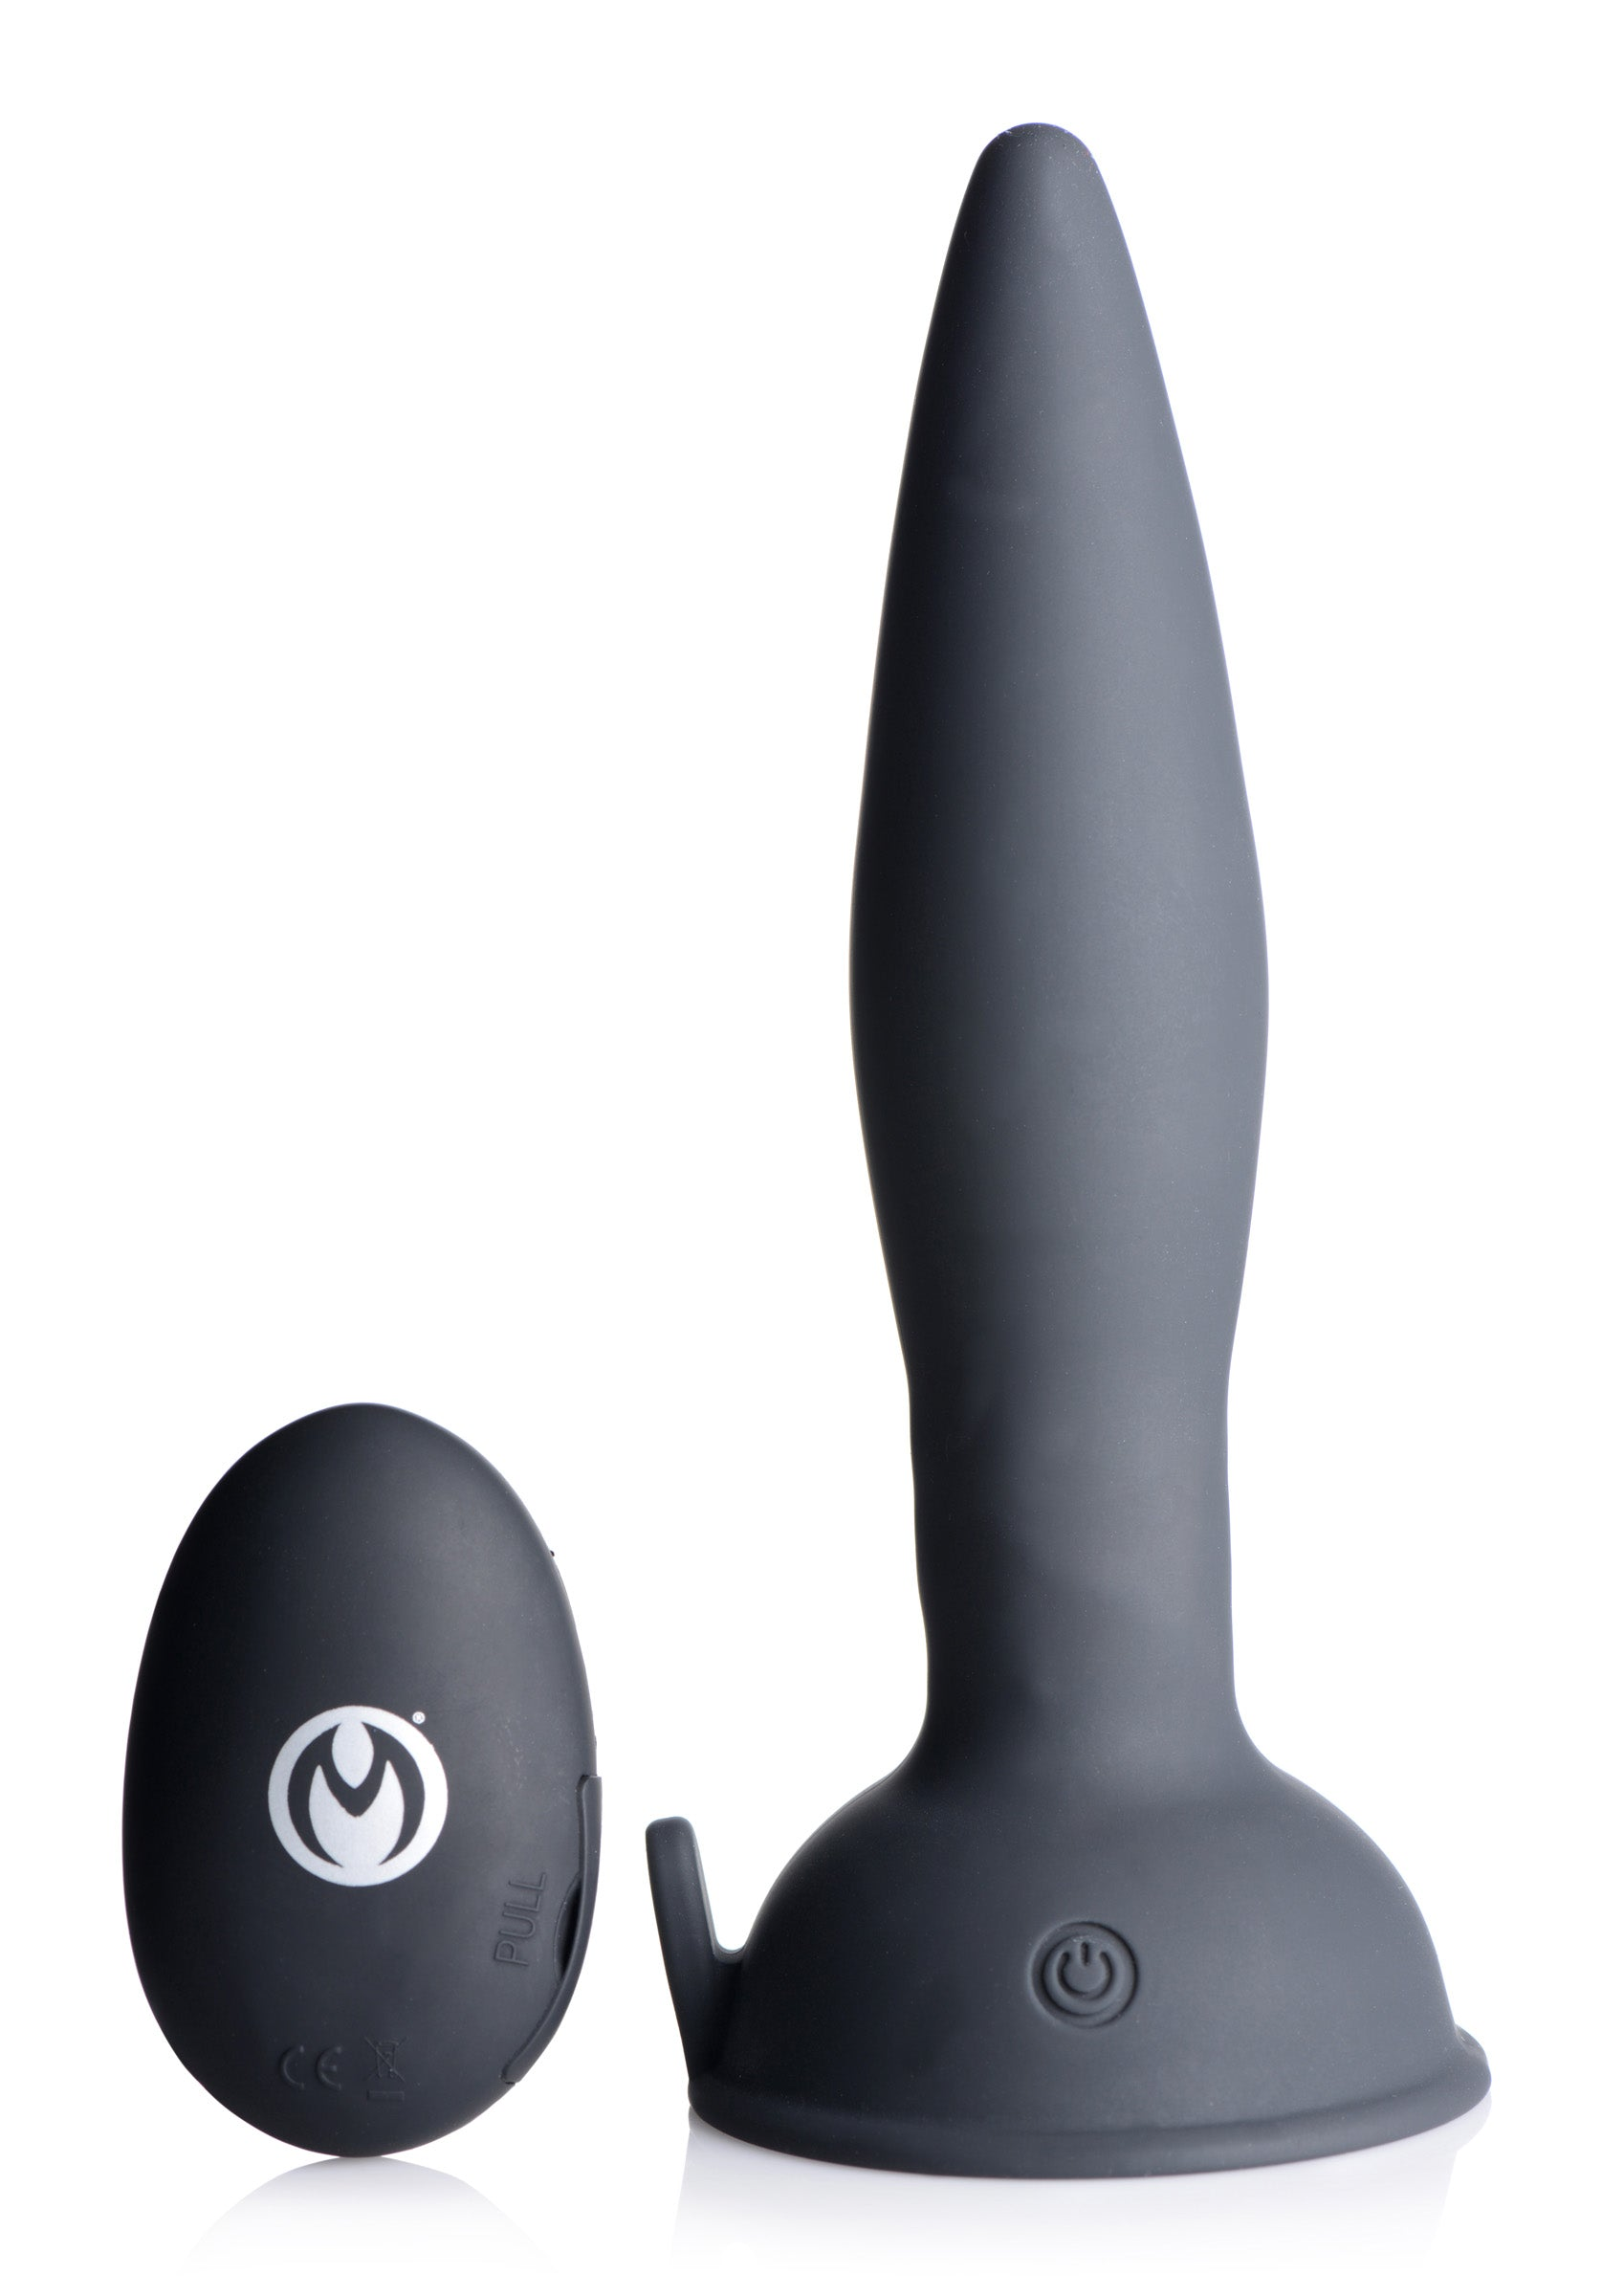 Turbo Ass-spinner Silicone Anal Plug With Remote Control